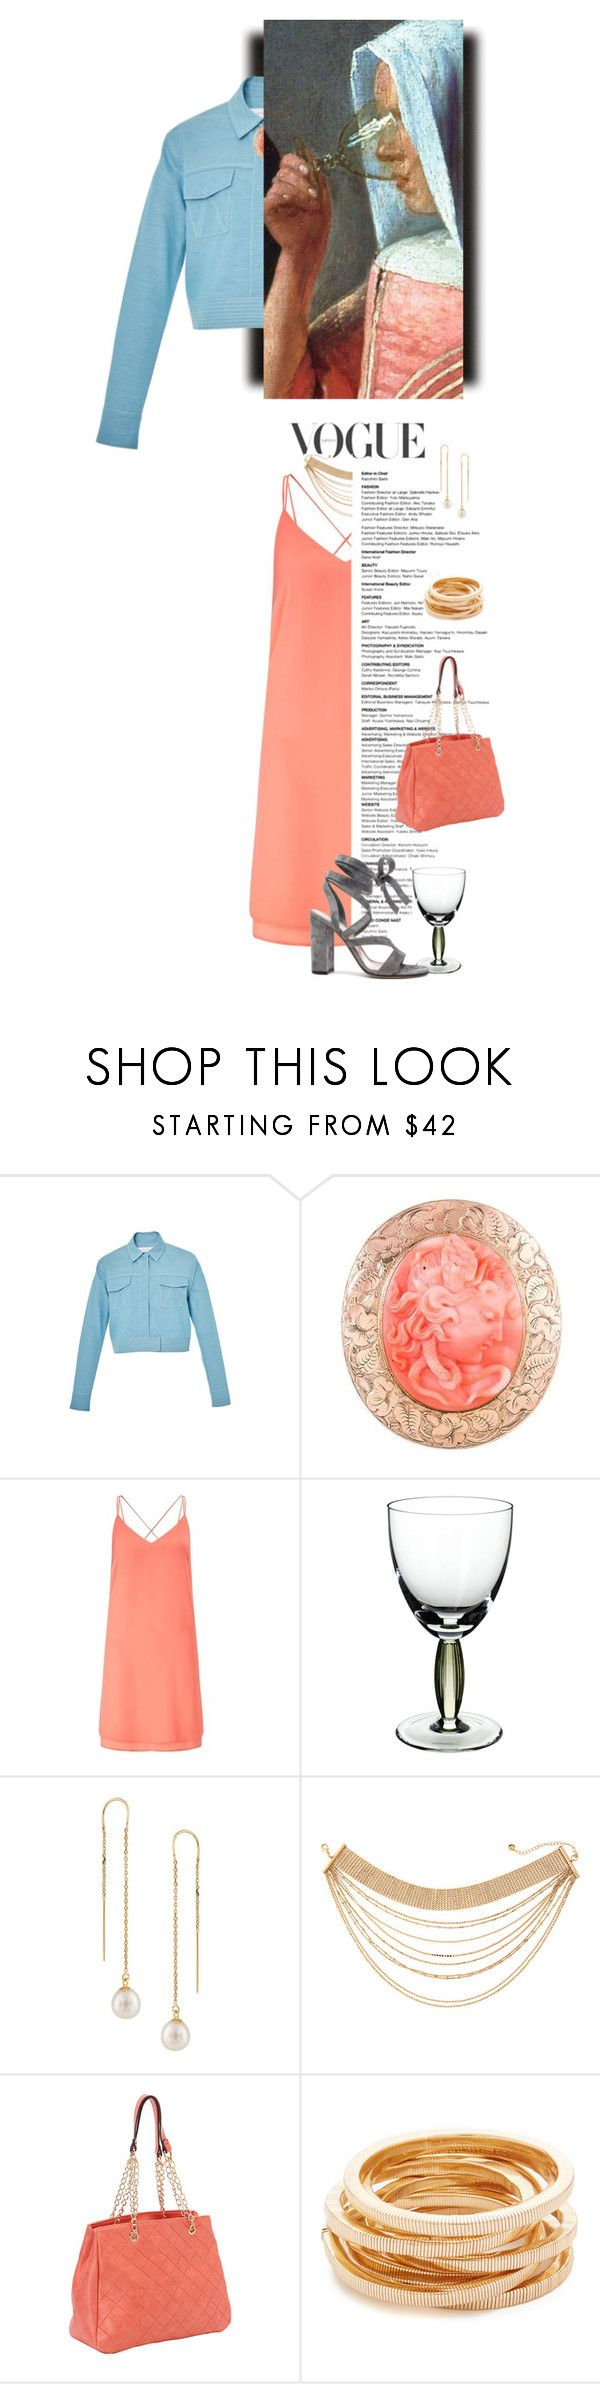 """""""vermeer coral plus"""" by jennifer ❤ liked on Polyvore featuring Marina Moscone, Miss Selfridge, Villeroy & Boch, Lydell NYC, SW Global, Kenneth Jay Lane and Gianvito Rossi"""